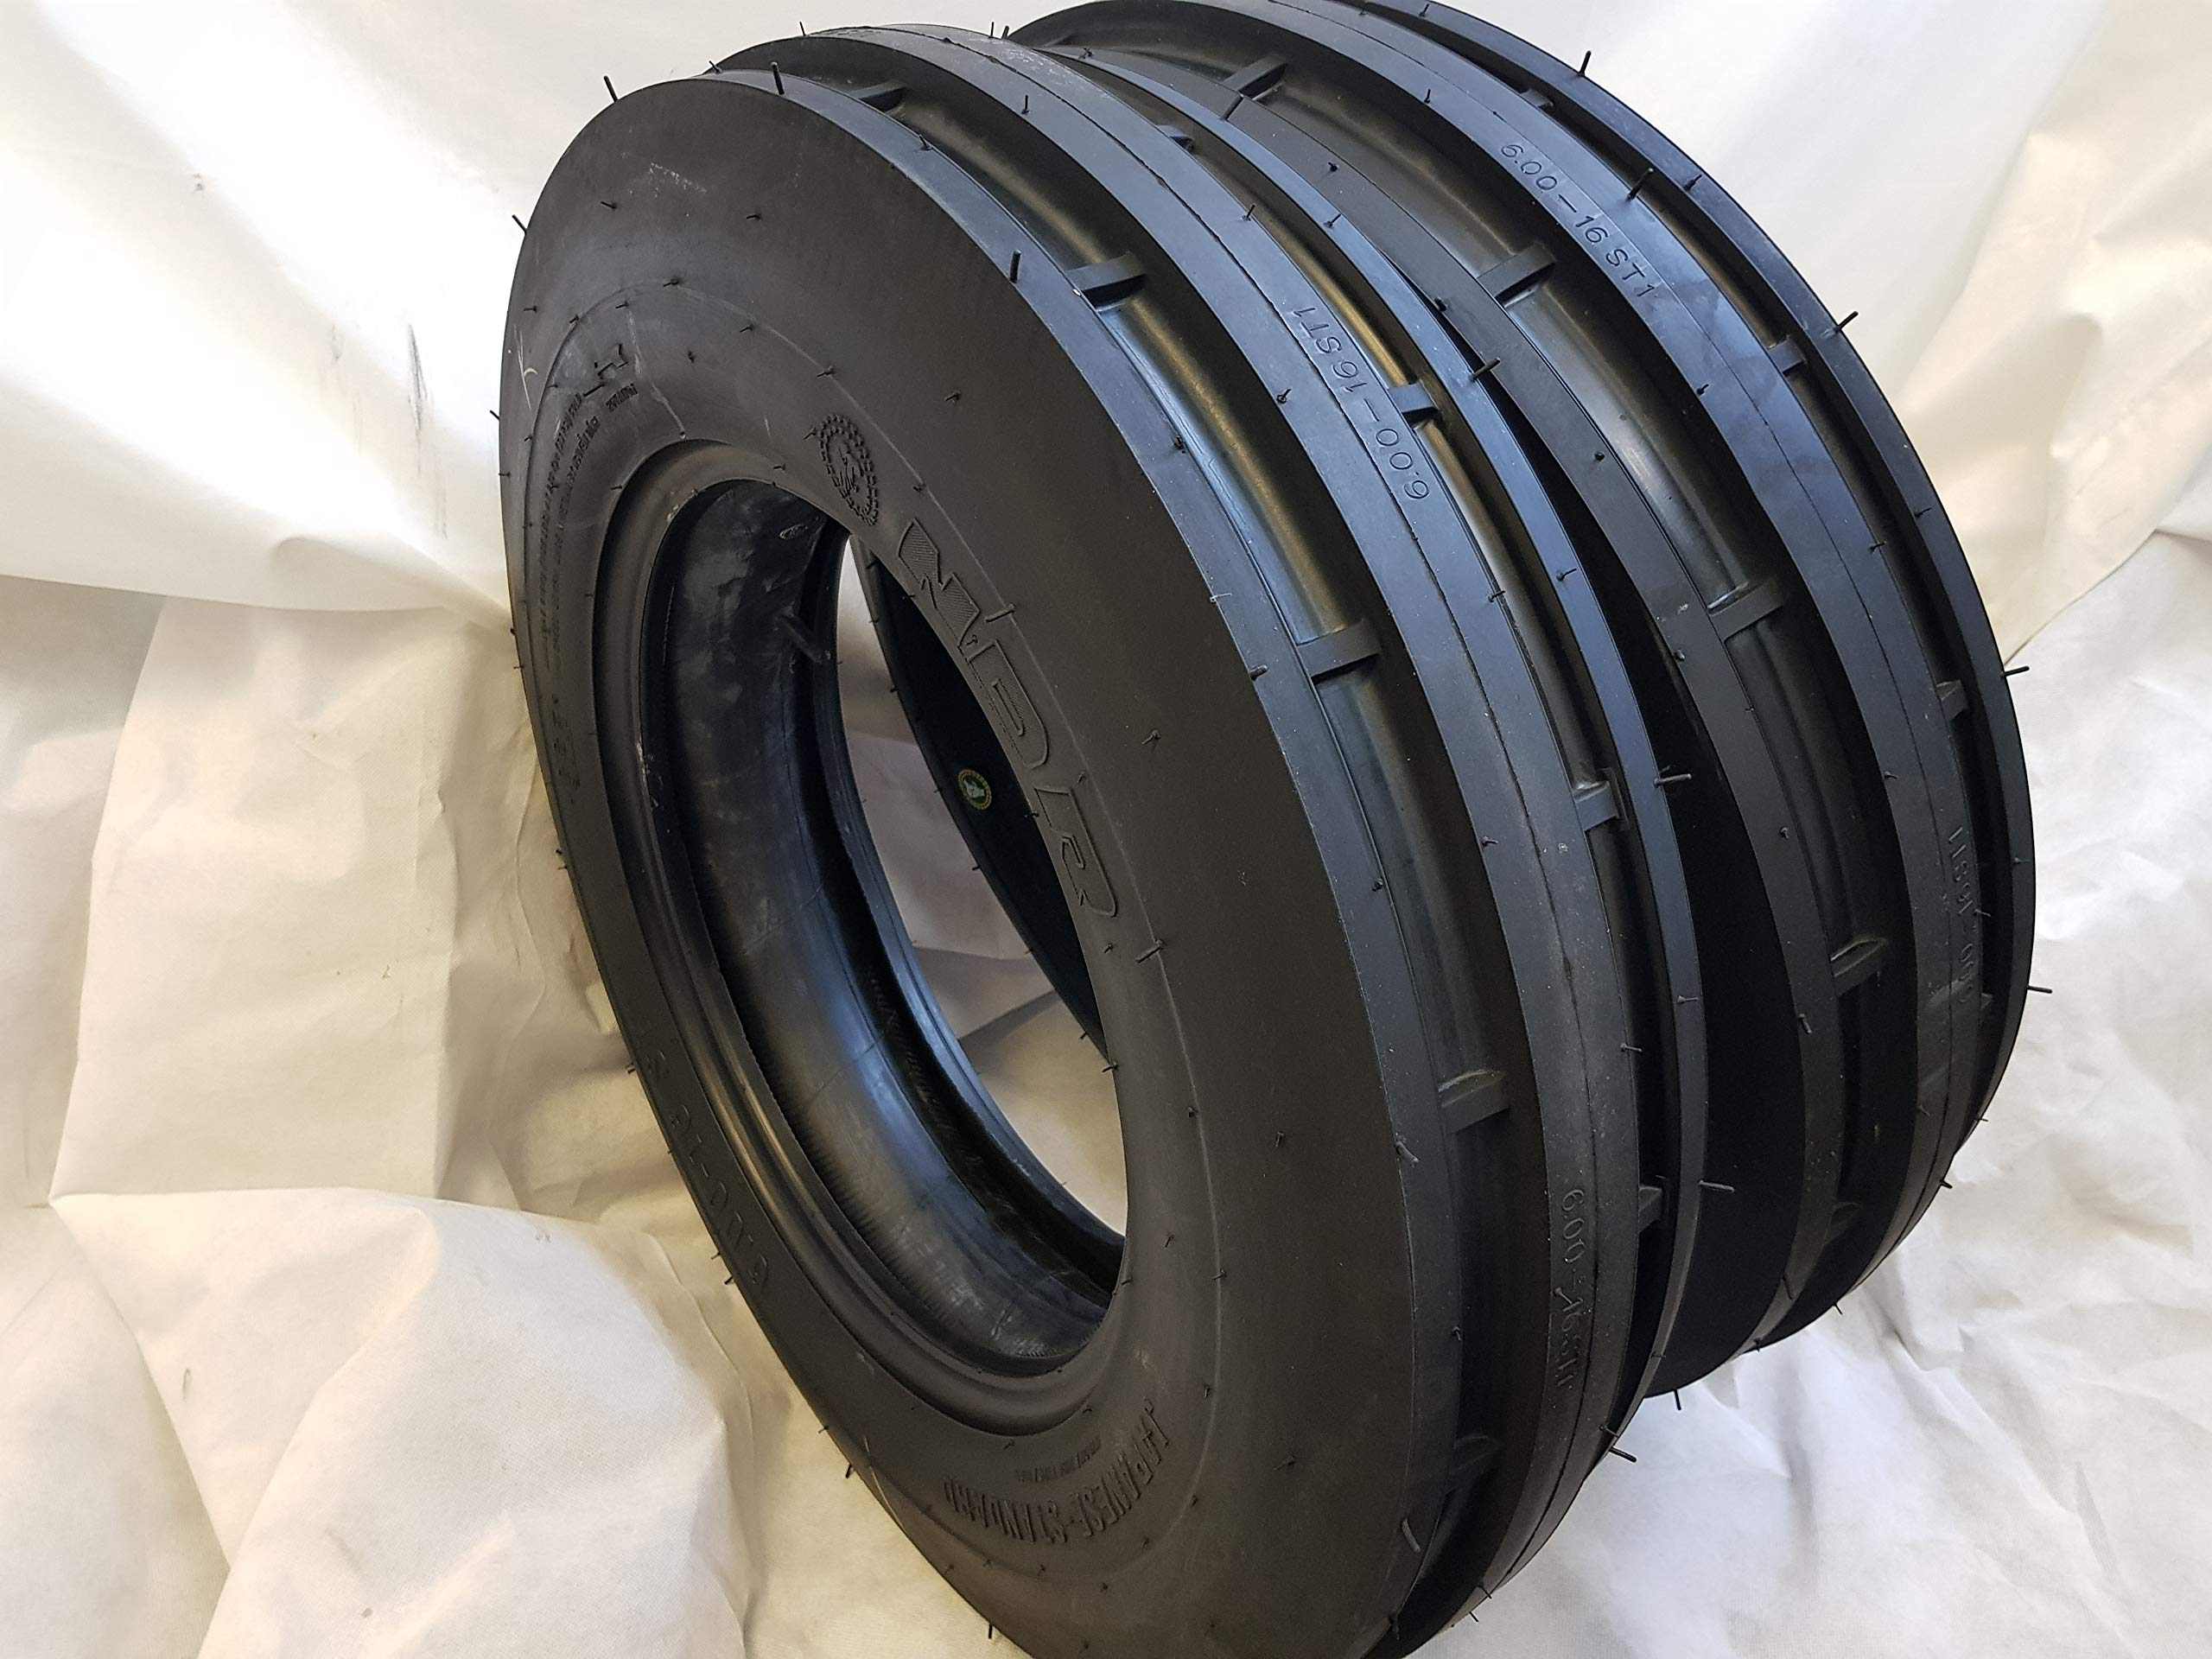 (2 TIRES + 2 TUBES) 6.00-16 8 PLY ROAD WARRIOR NDR ST-1 F2 3-Rib Farm Tractor Tire 6.00x16 by ROAD WARRIOR NDR (Image #2)